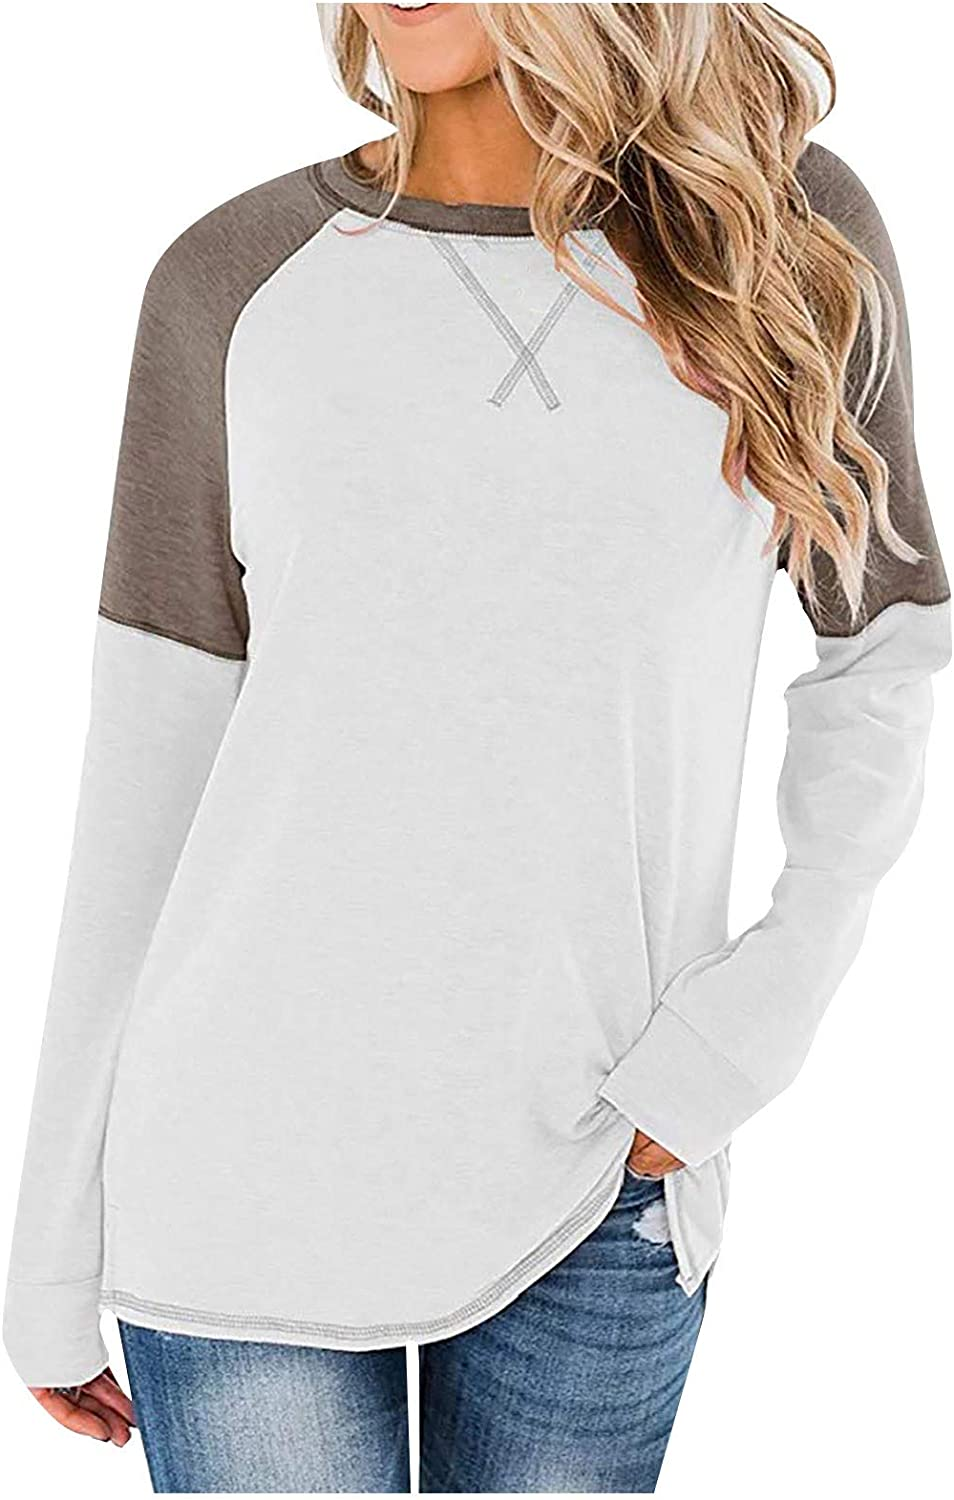 AODONG Womens Long Sleeve Tops,Women's Long Sleeve Stitching Round Neck Casual Blouse Tunic Shirt Tops